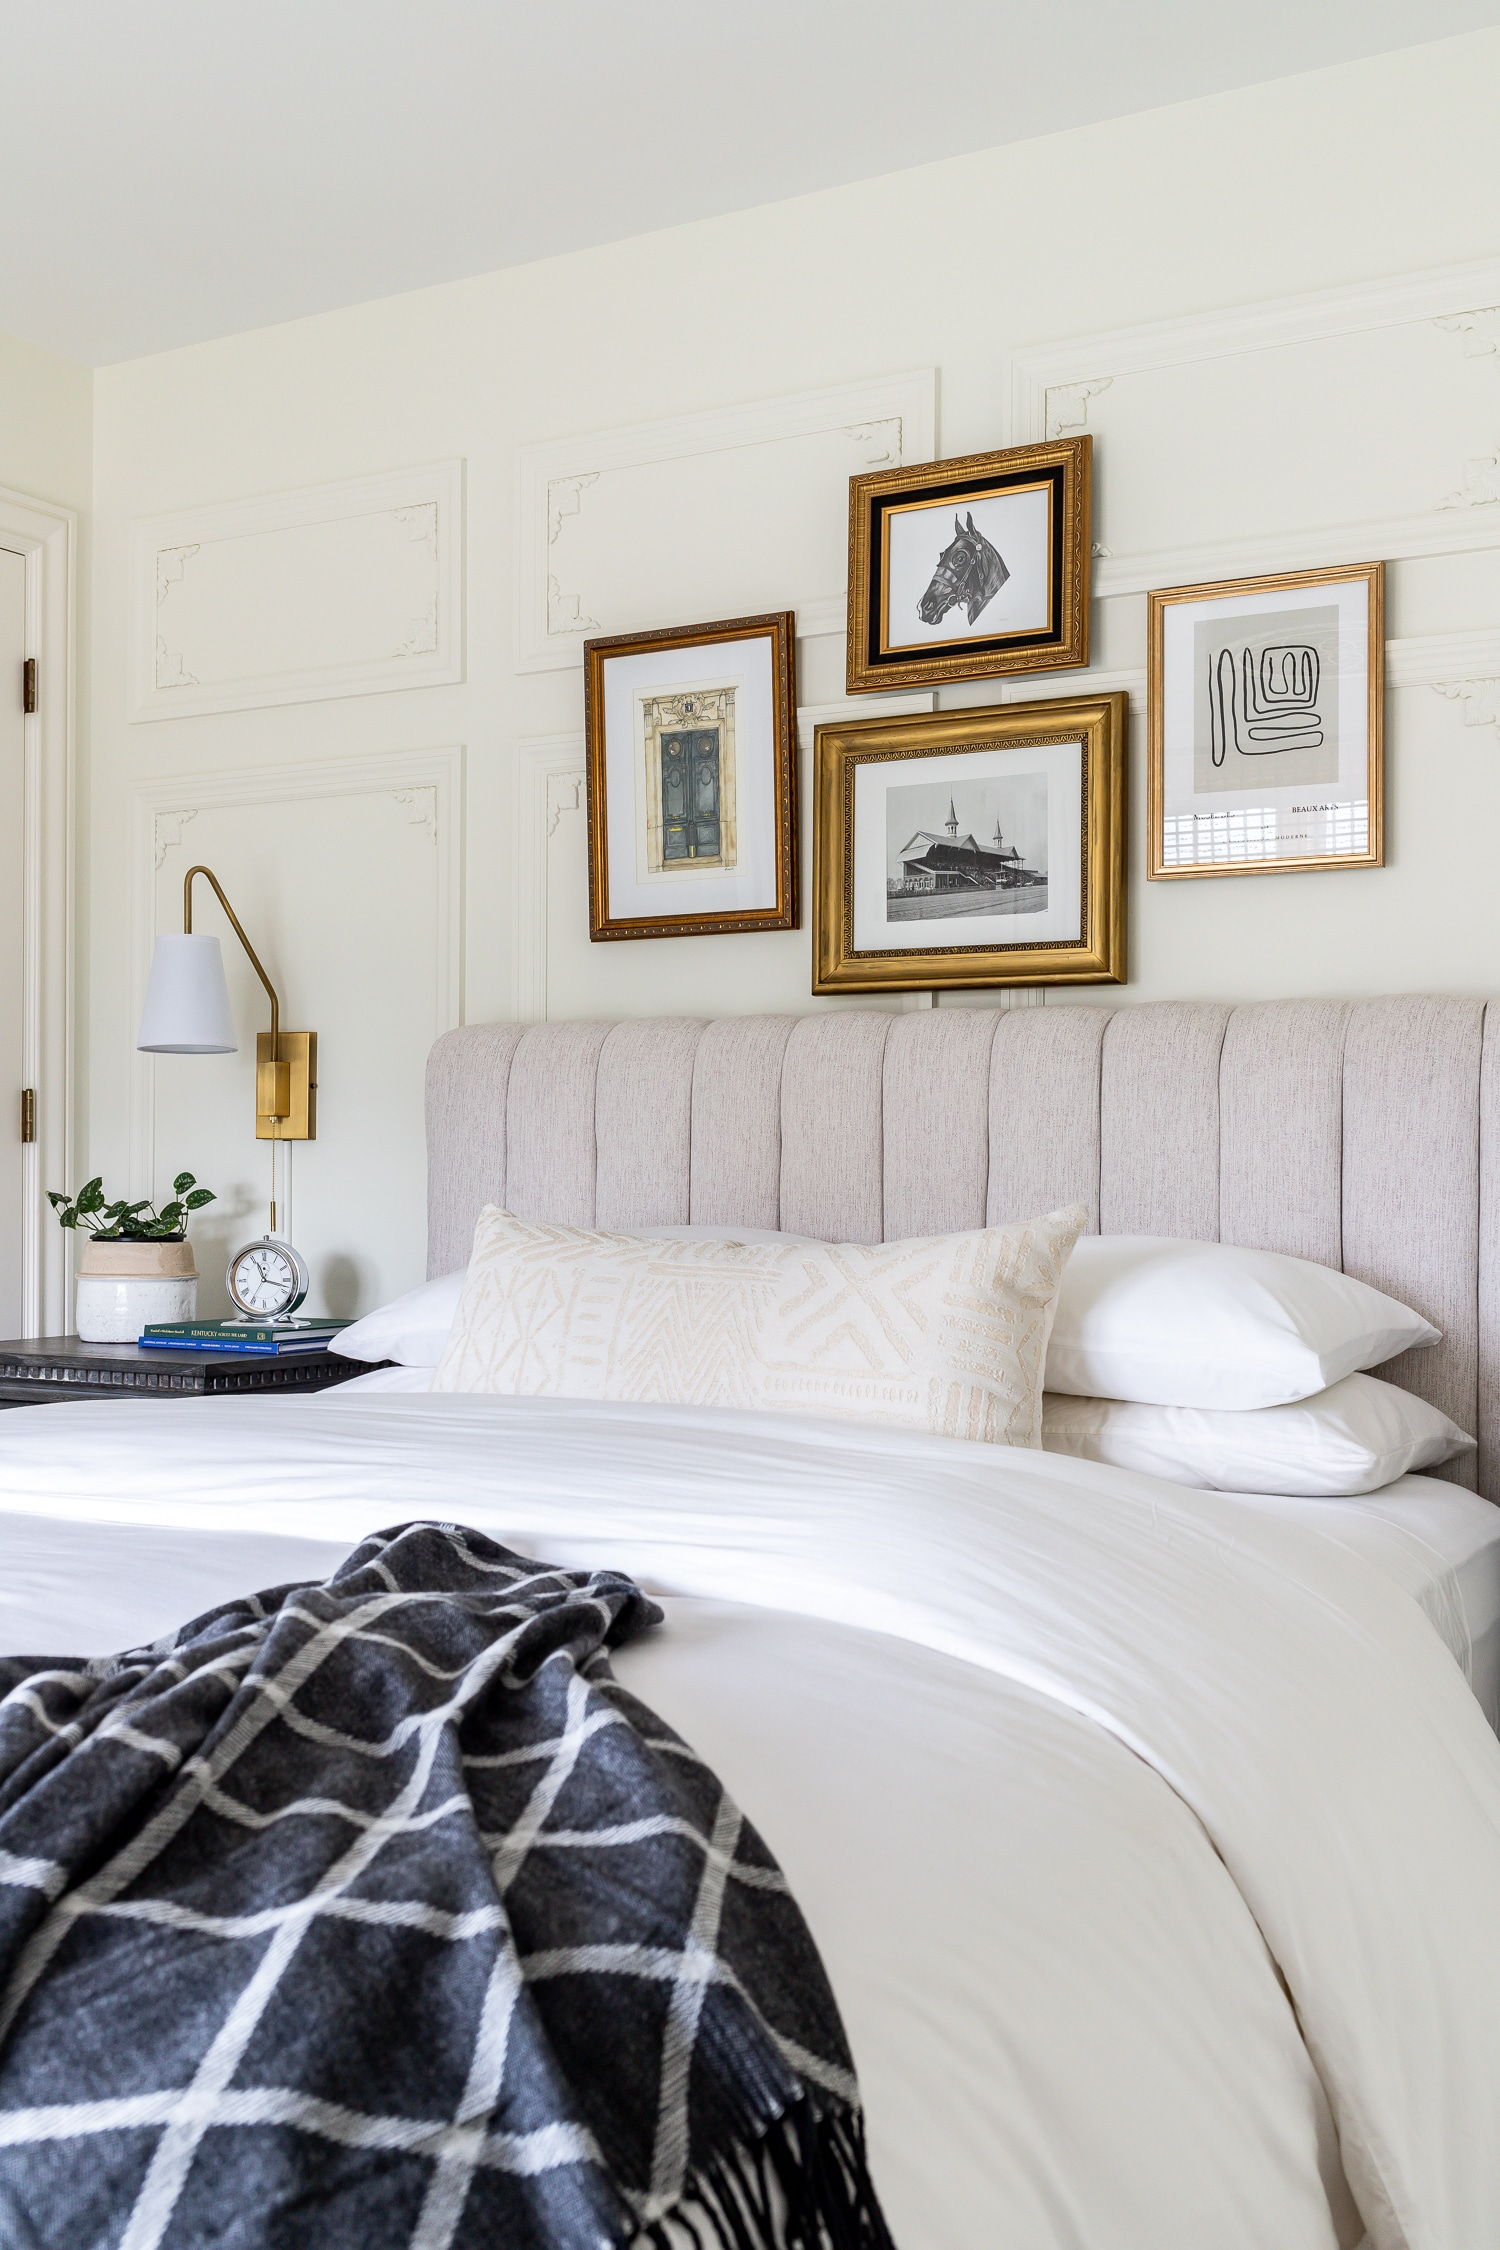 Art gallery with vintage frames above bed